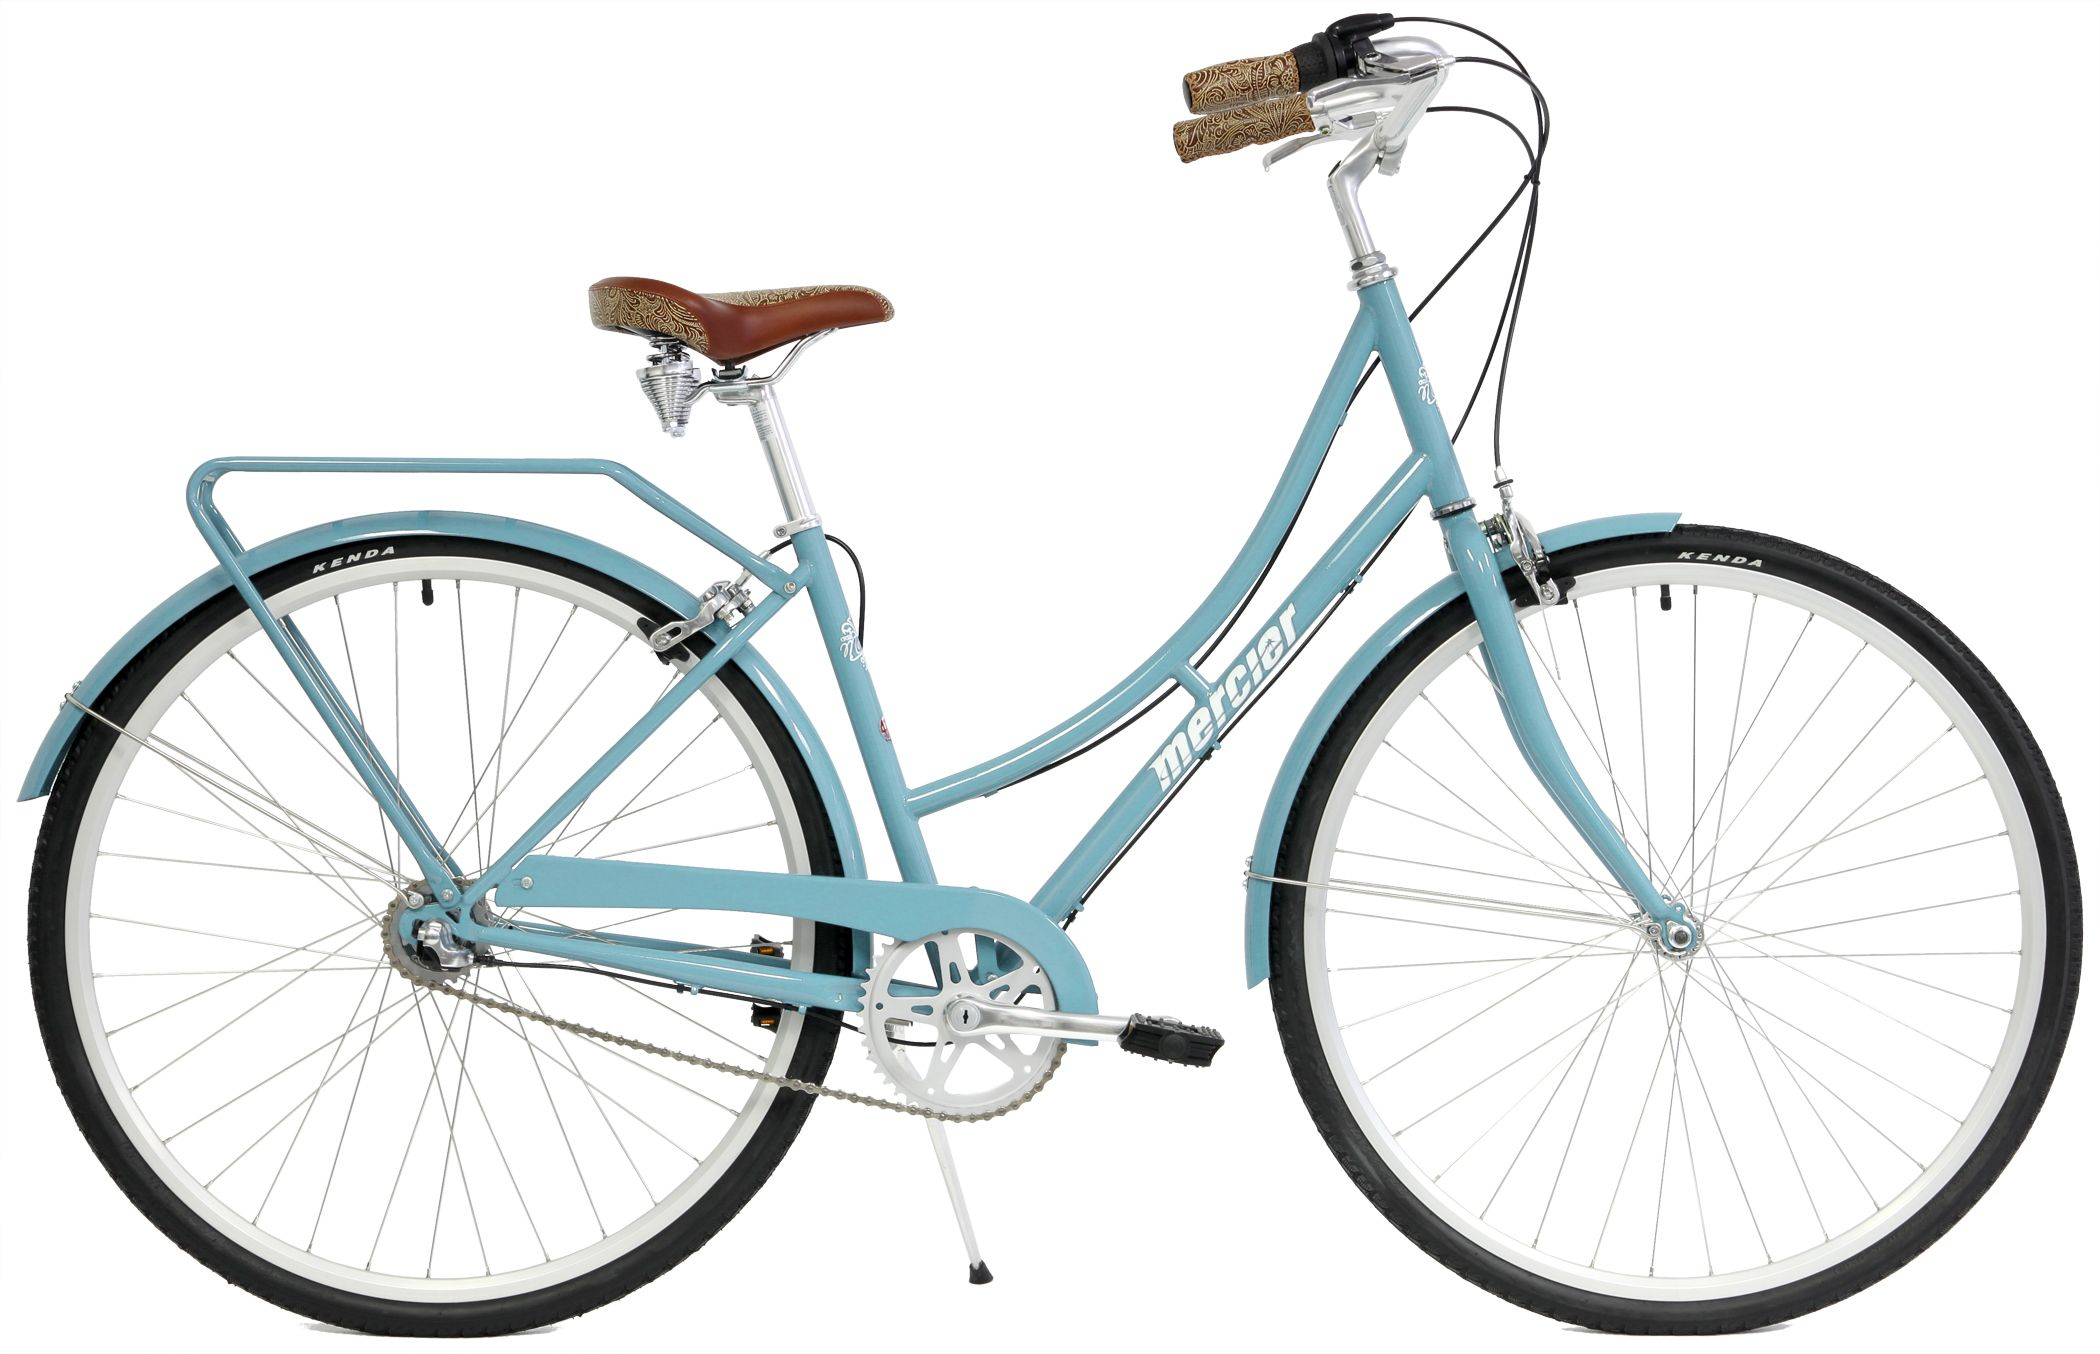 Elle City Ocean 2100 Jpg 2100 1354 Urban Bike City Bike Comfort Bicycle